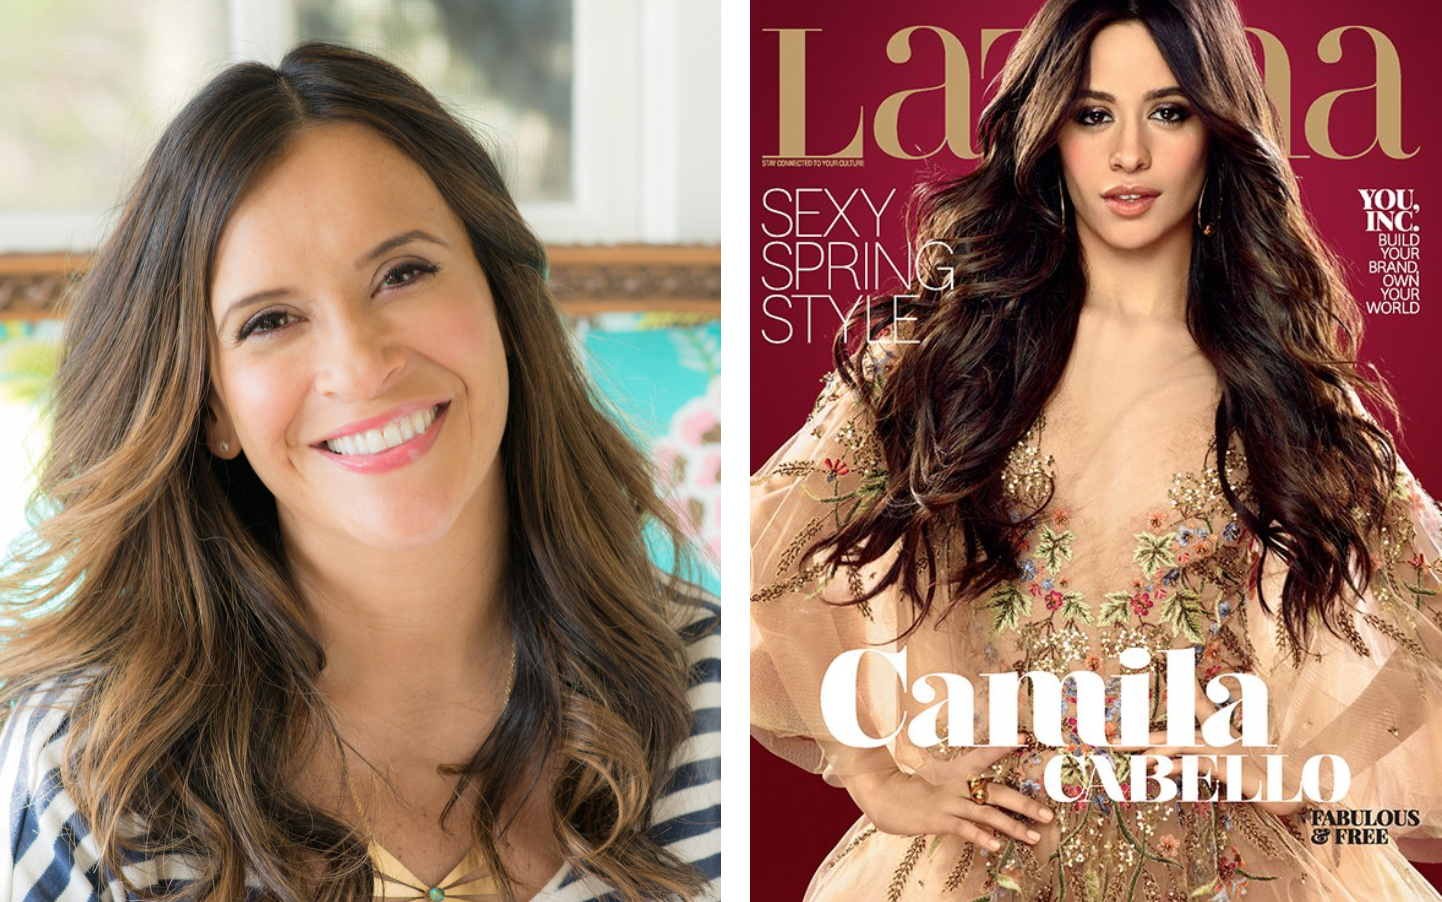 Latina promotes Moreno as magazine experiences financial troubles